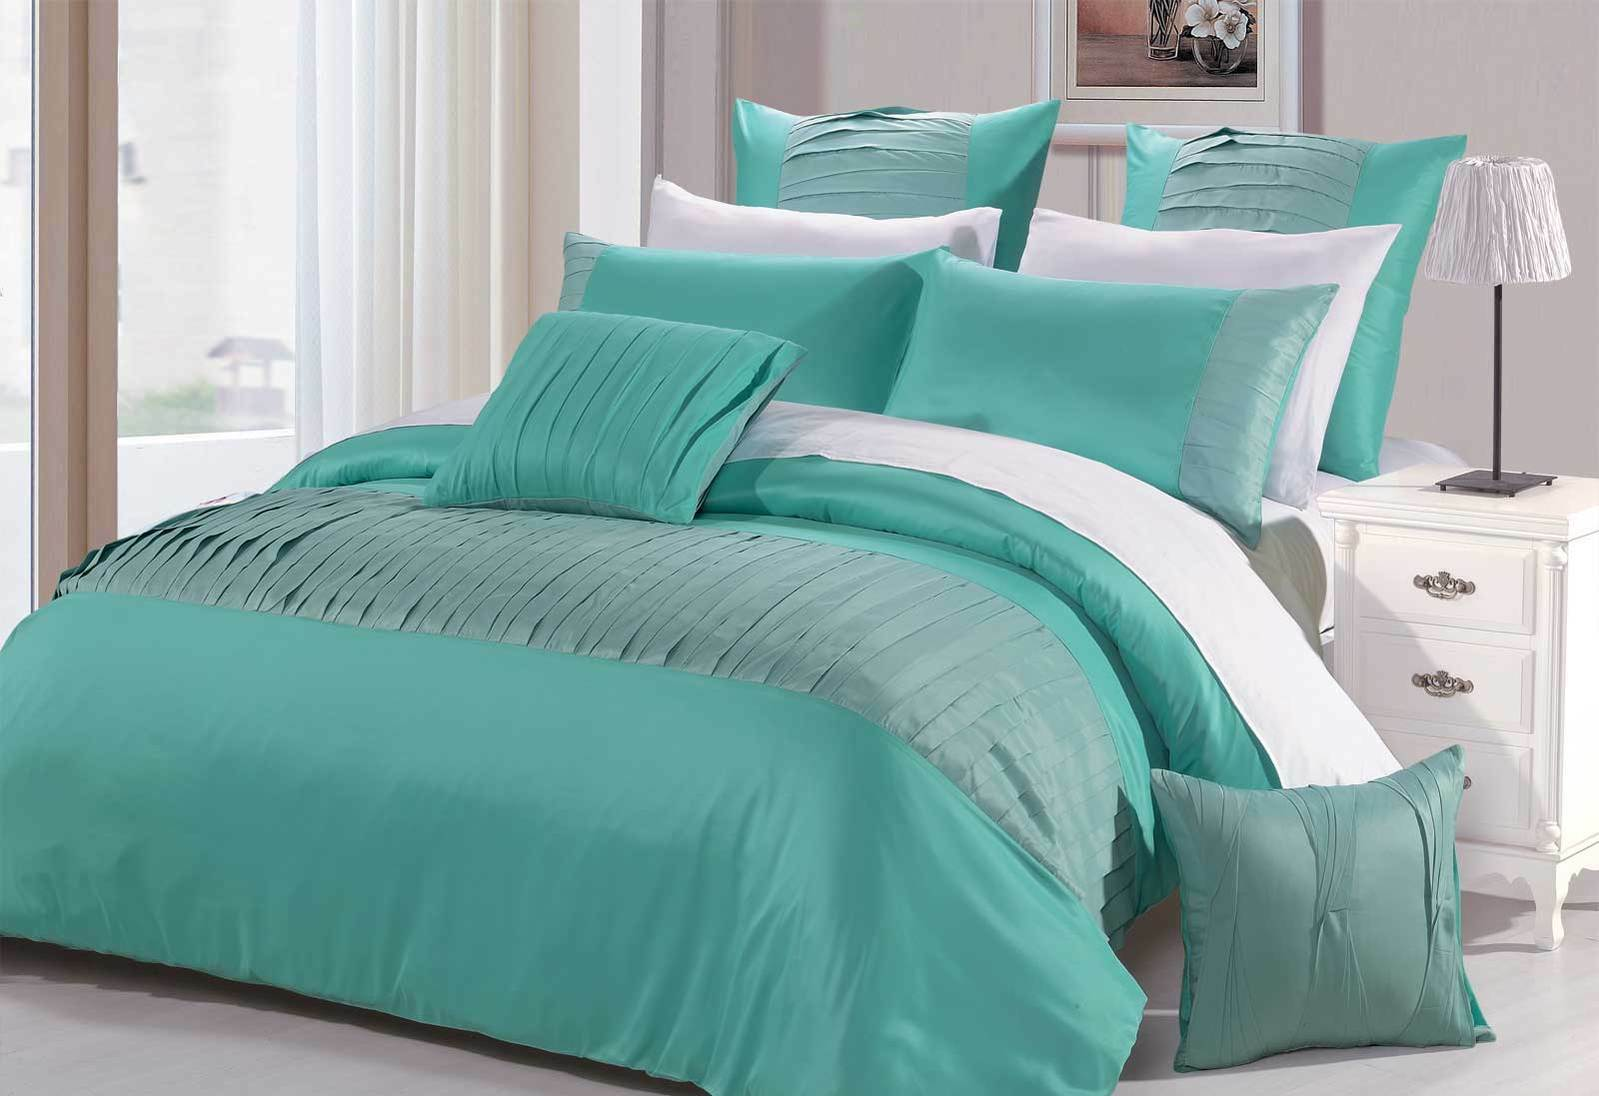 Turquoise Quilt Cover Molise Turquoise Quilt Cover Set Aqua Summer Bedding Set